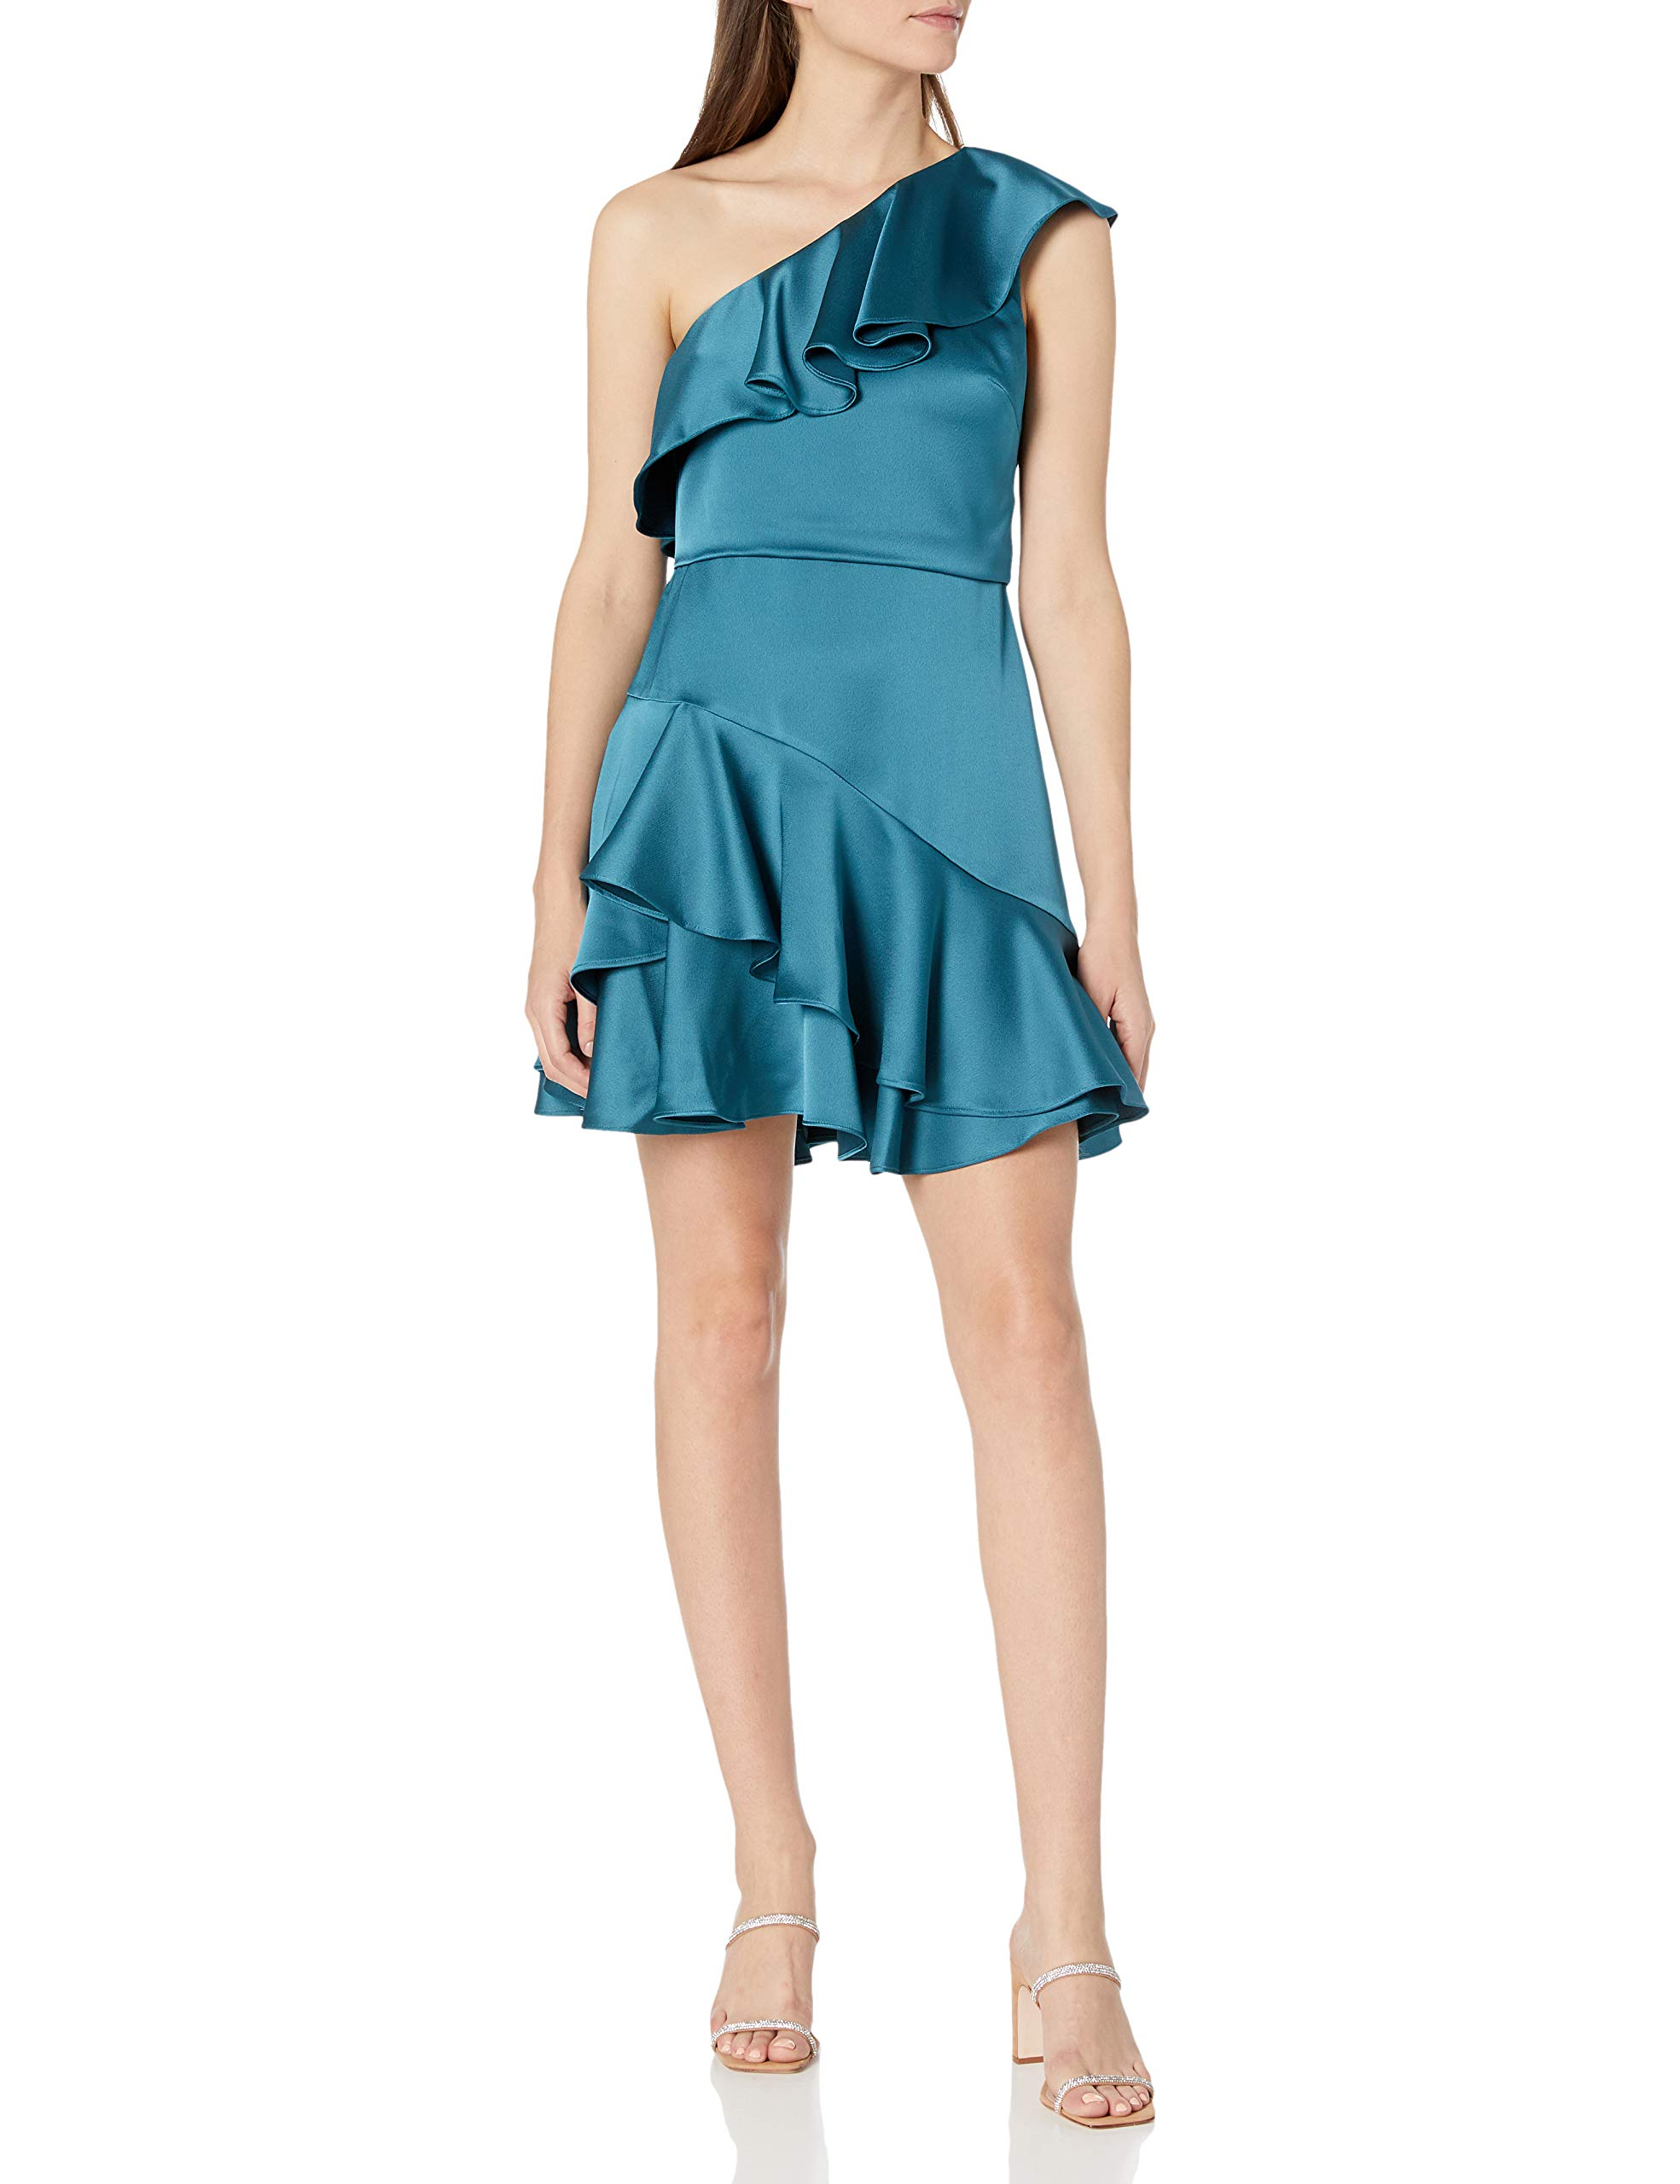 Available at Amazon: Halston Heritage Women's One Shoulder Flounce Dress